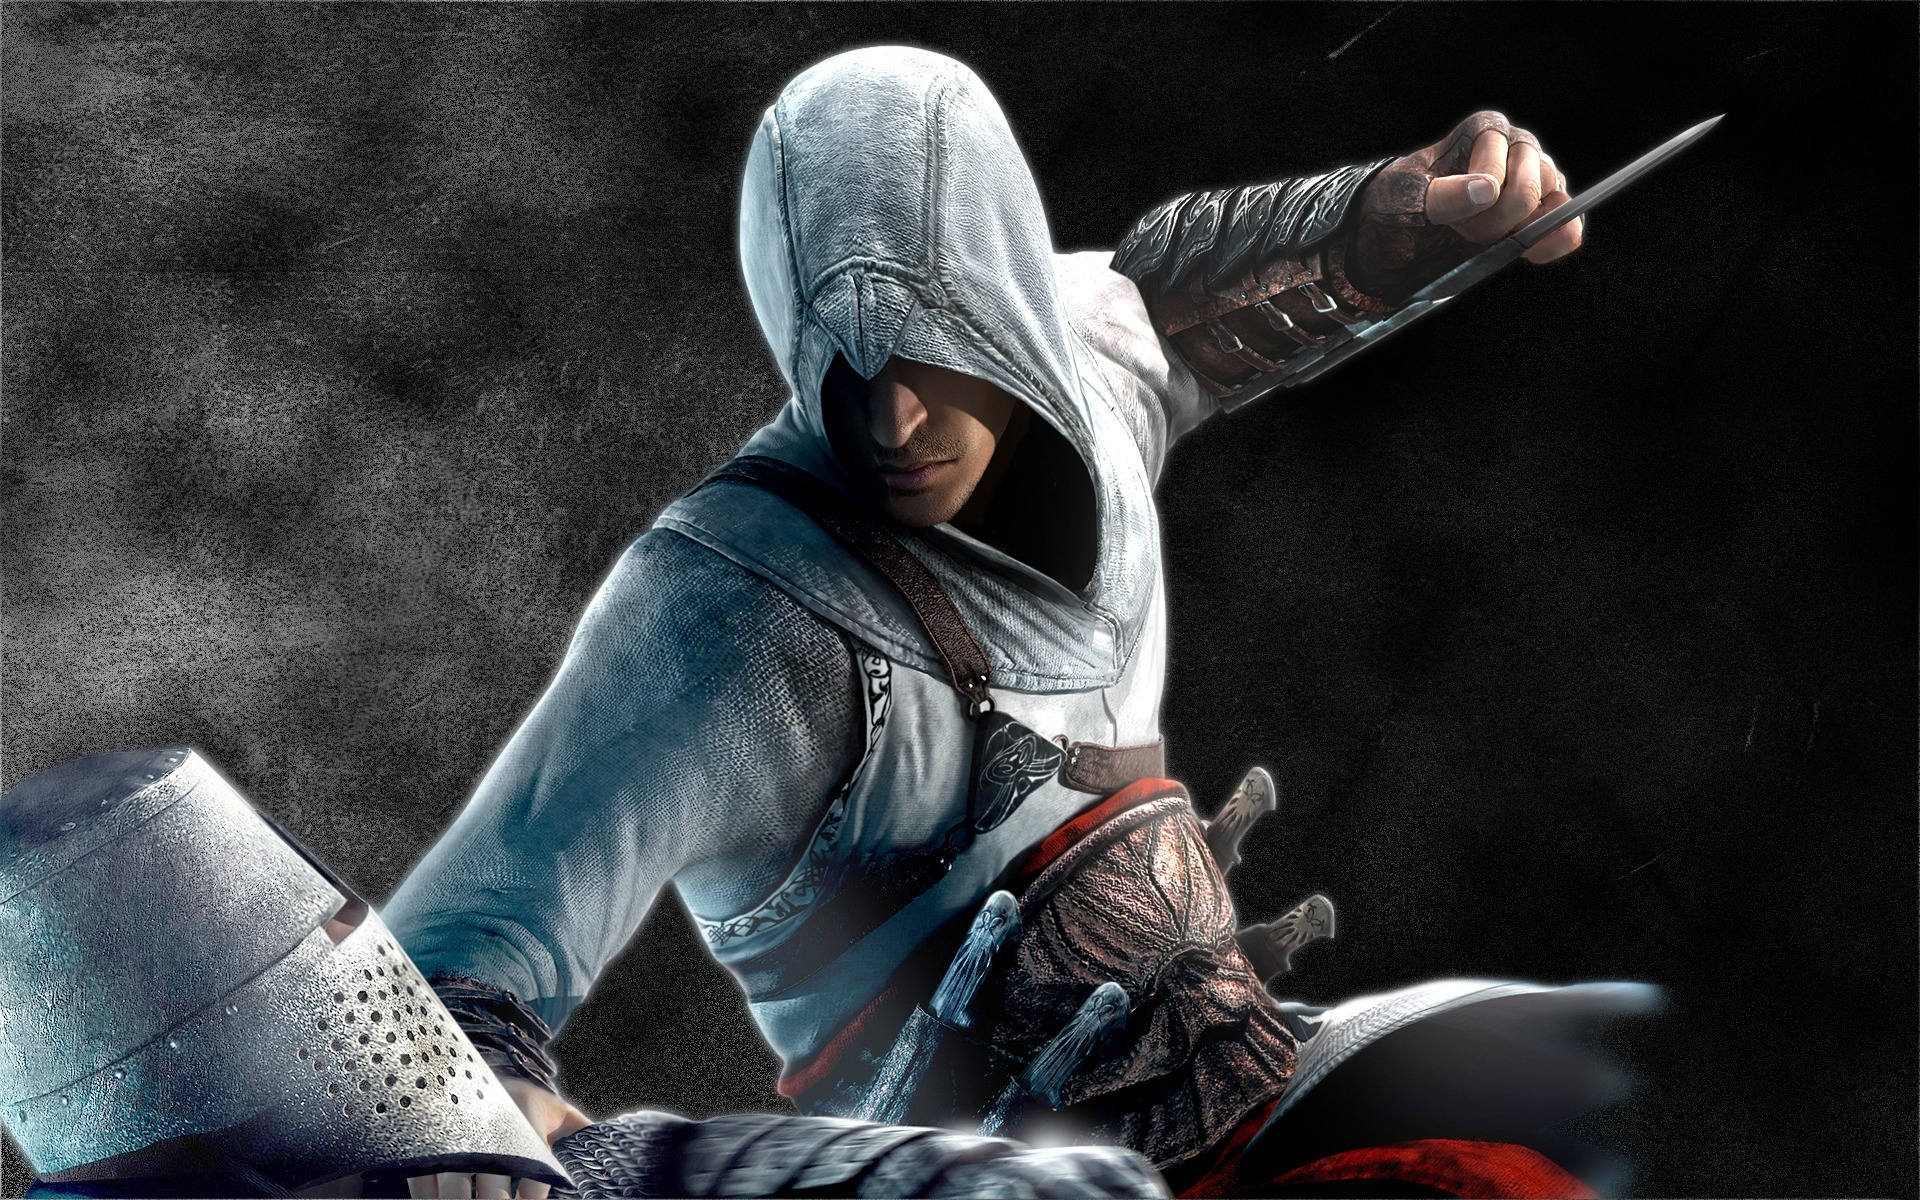 assassins creed Altair knight HD Wallpaper